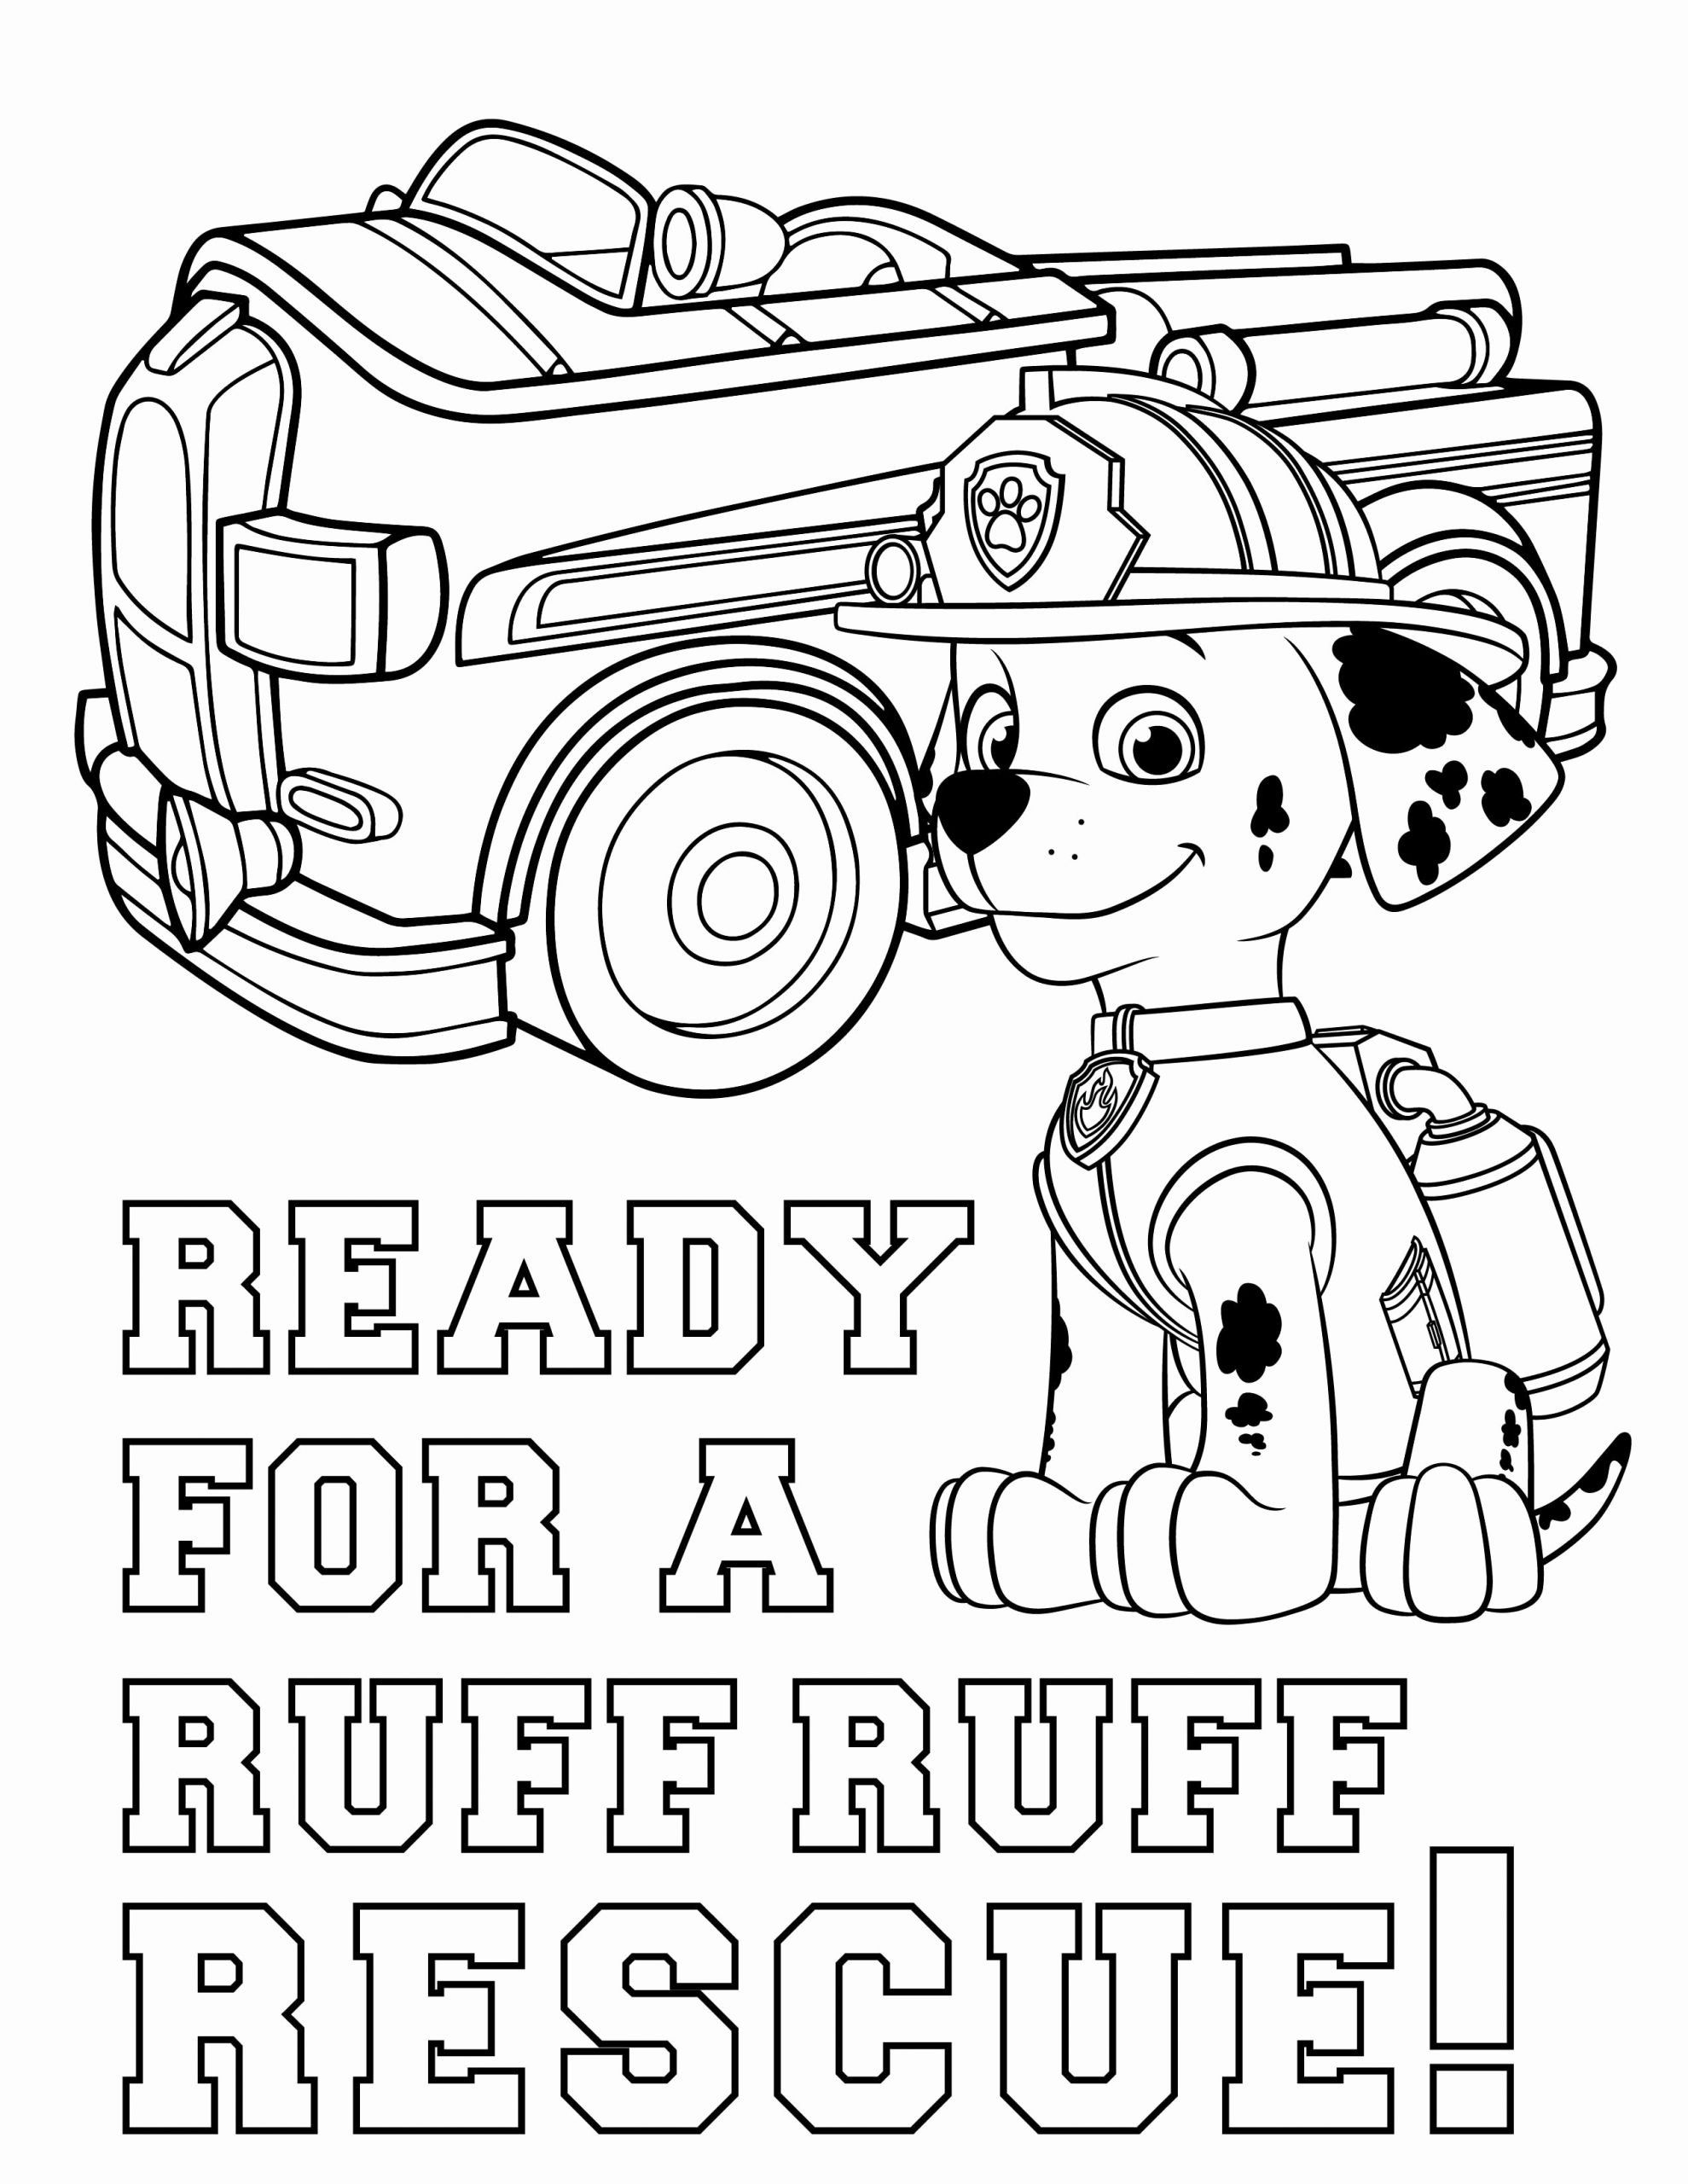 32 Paw Patrol Marshall Coloring Page in 2020 | Paw patrol ...